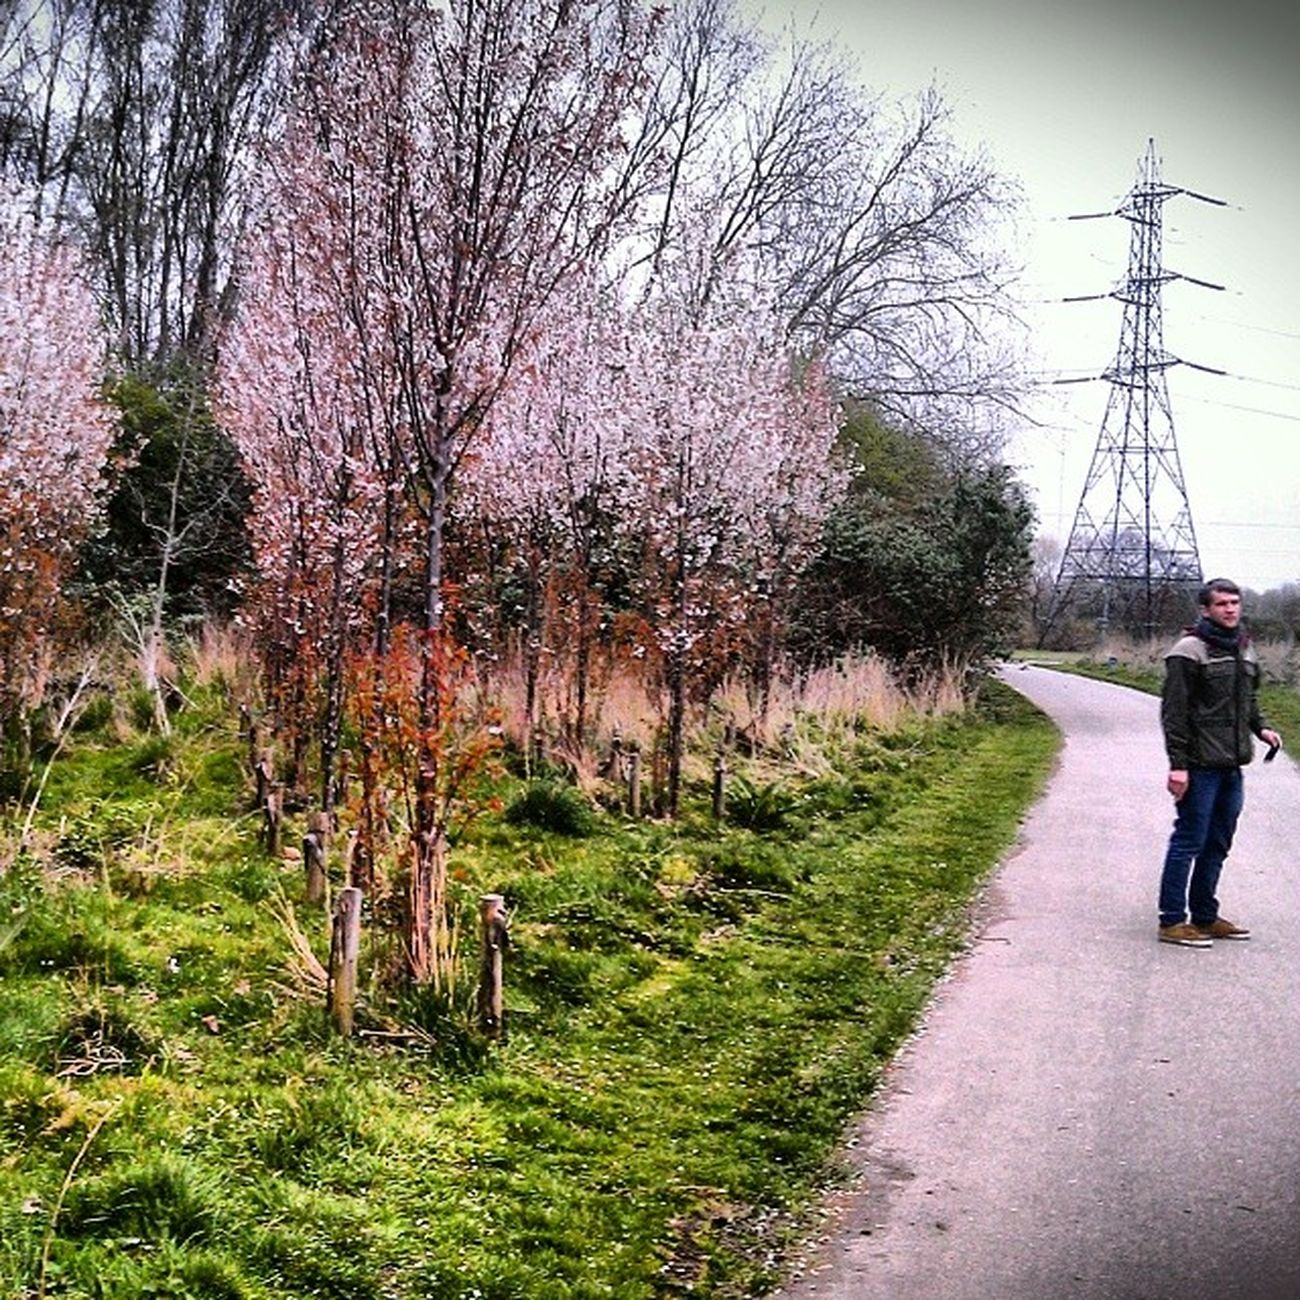 Lost on the way to Hackney Marsh. But Spring is here! Spring Blossom Hackney Powerlinesaresoscenic